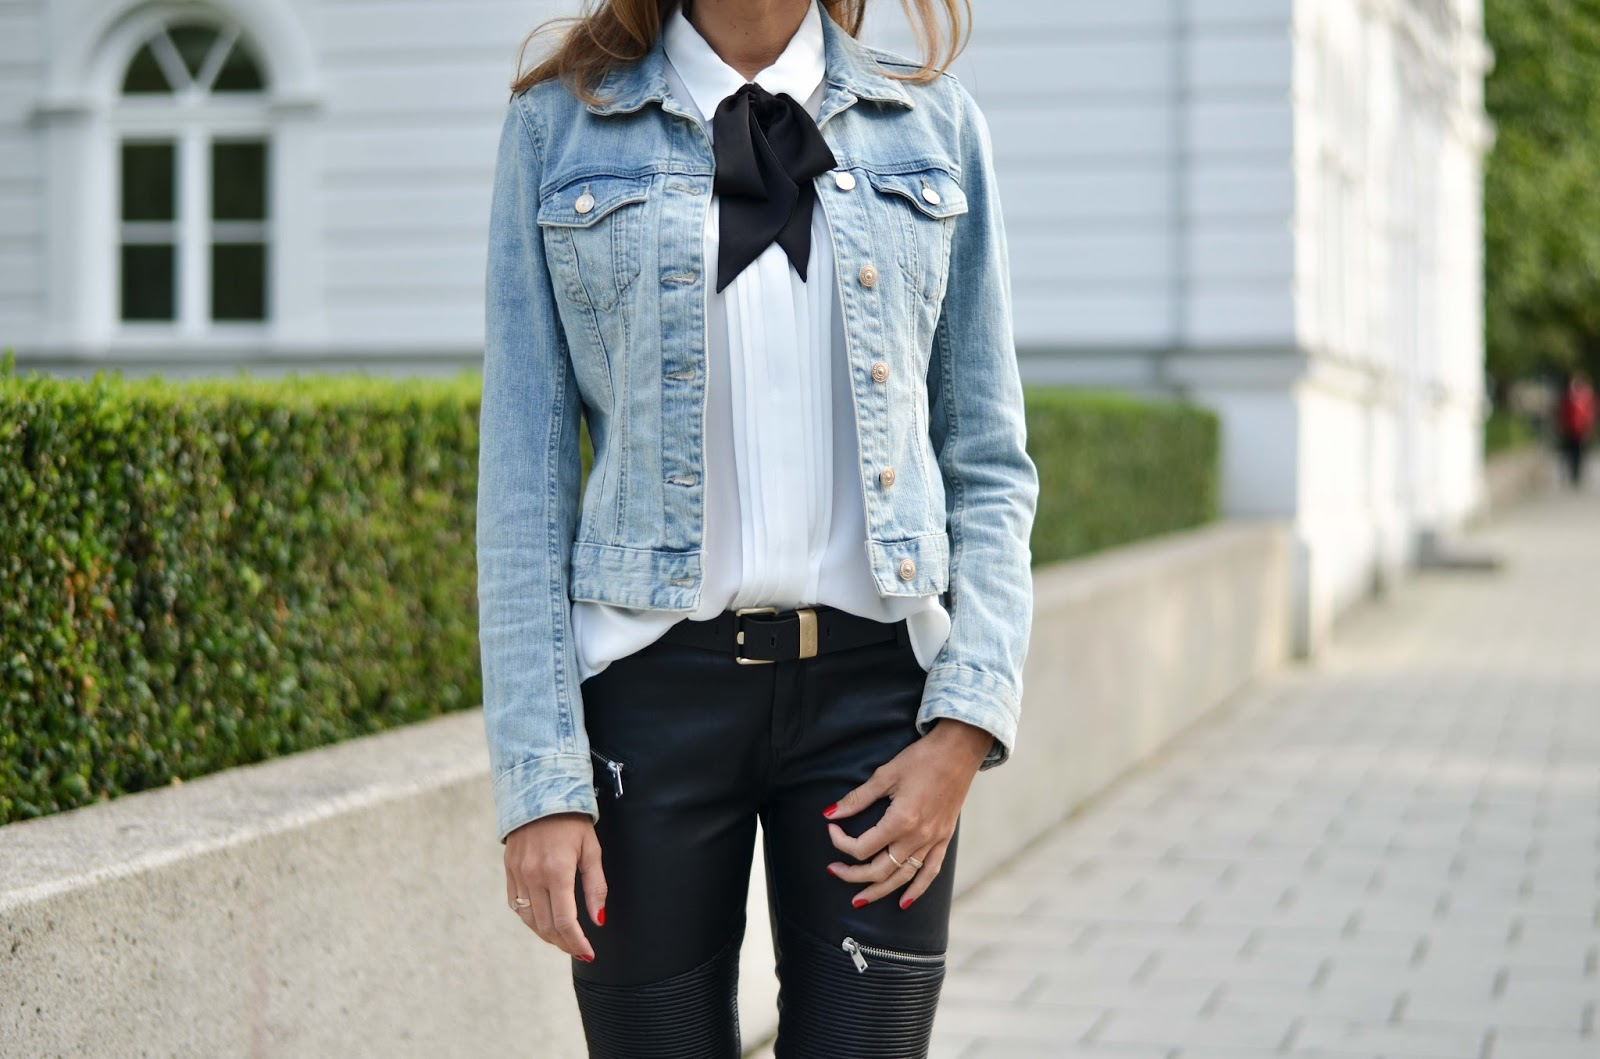 kristjaana mere hm bow tie blouse denim jacket leather pants